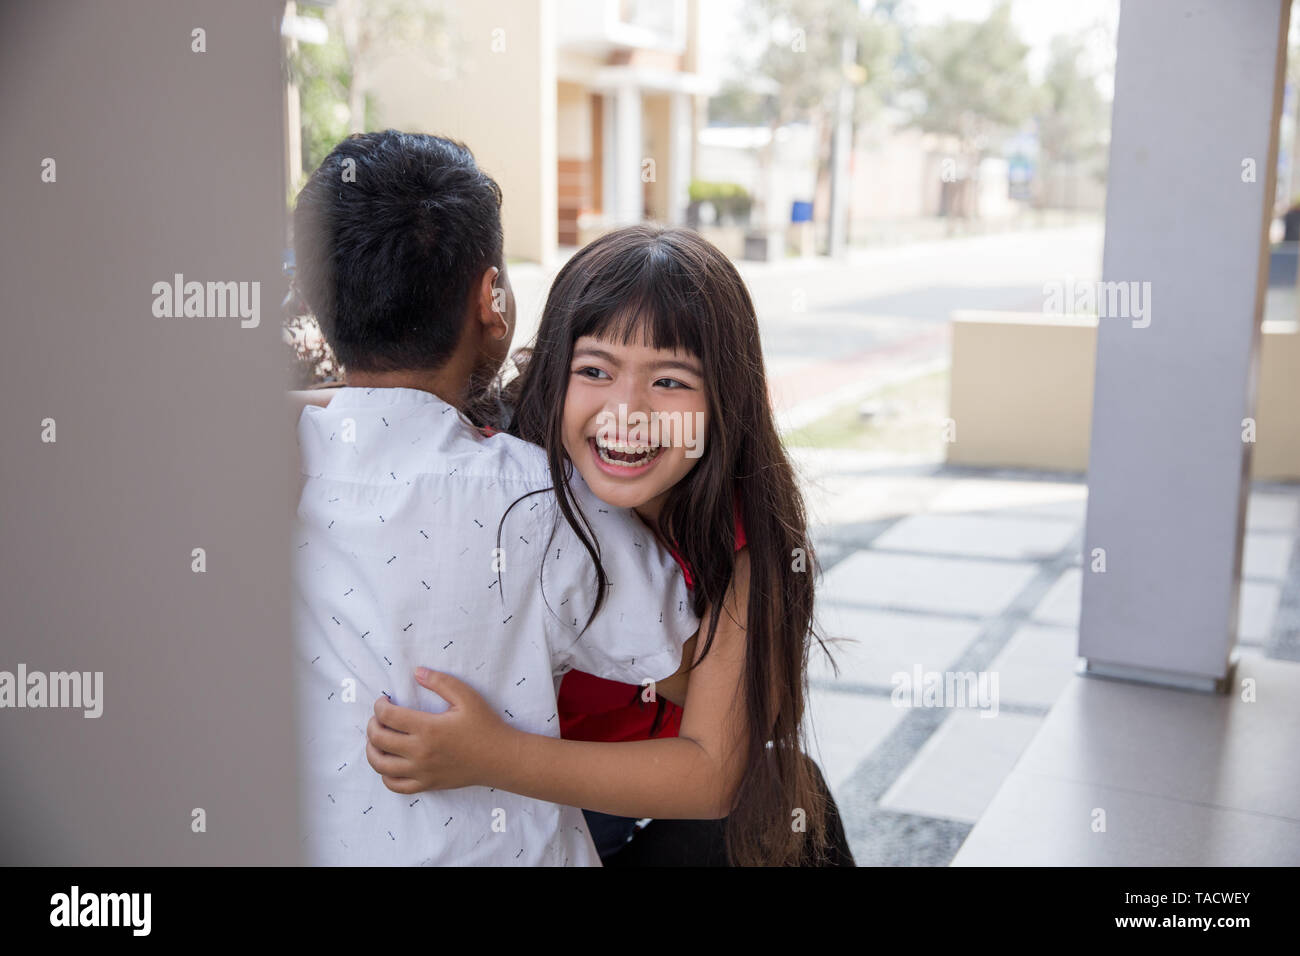 Happy family daughter running and hugging dad after going back from school - Stock Image